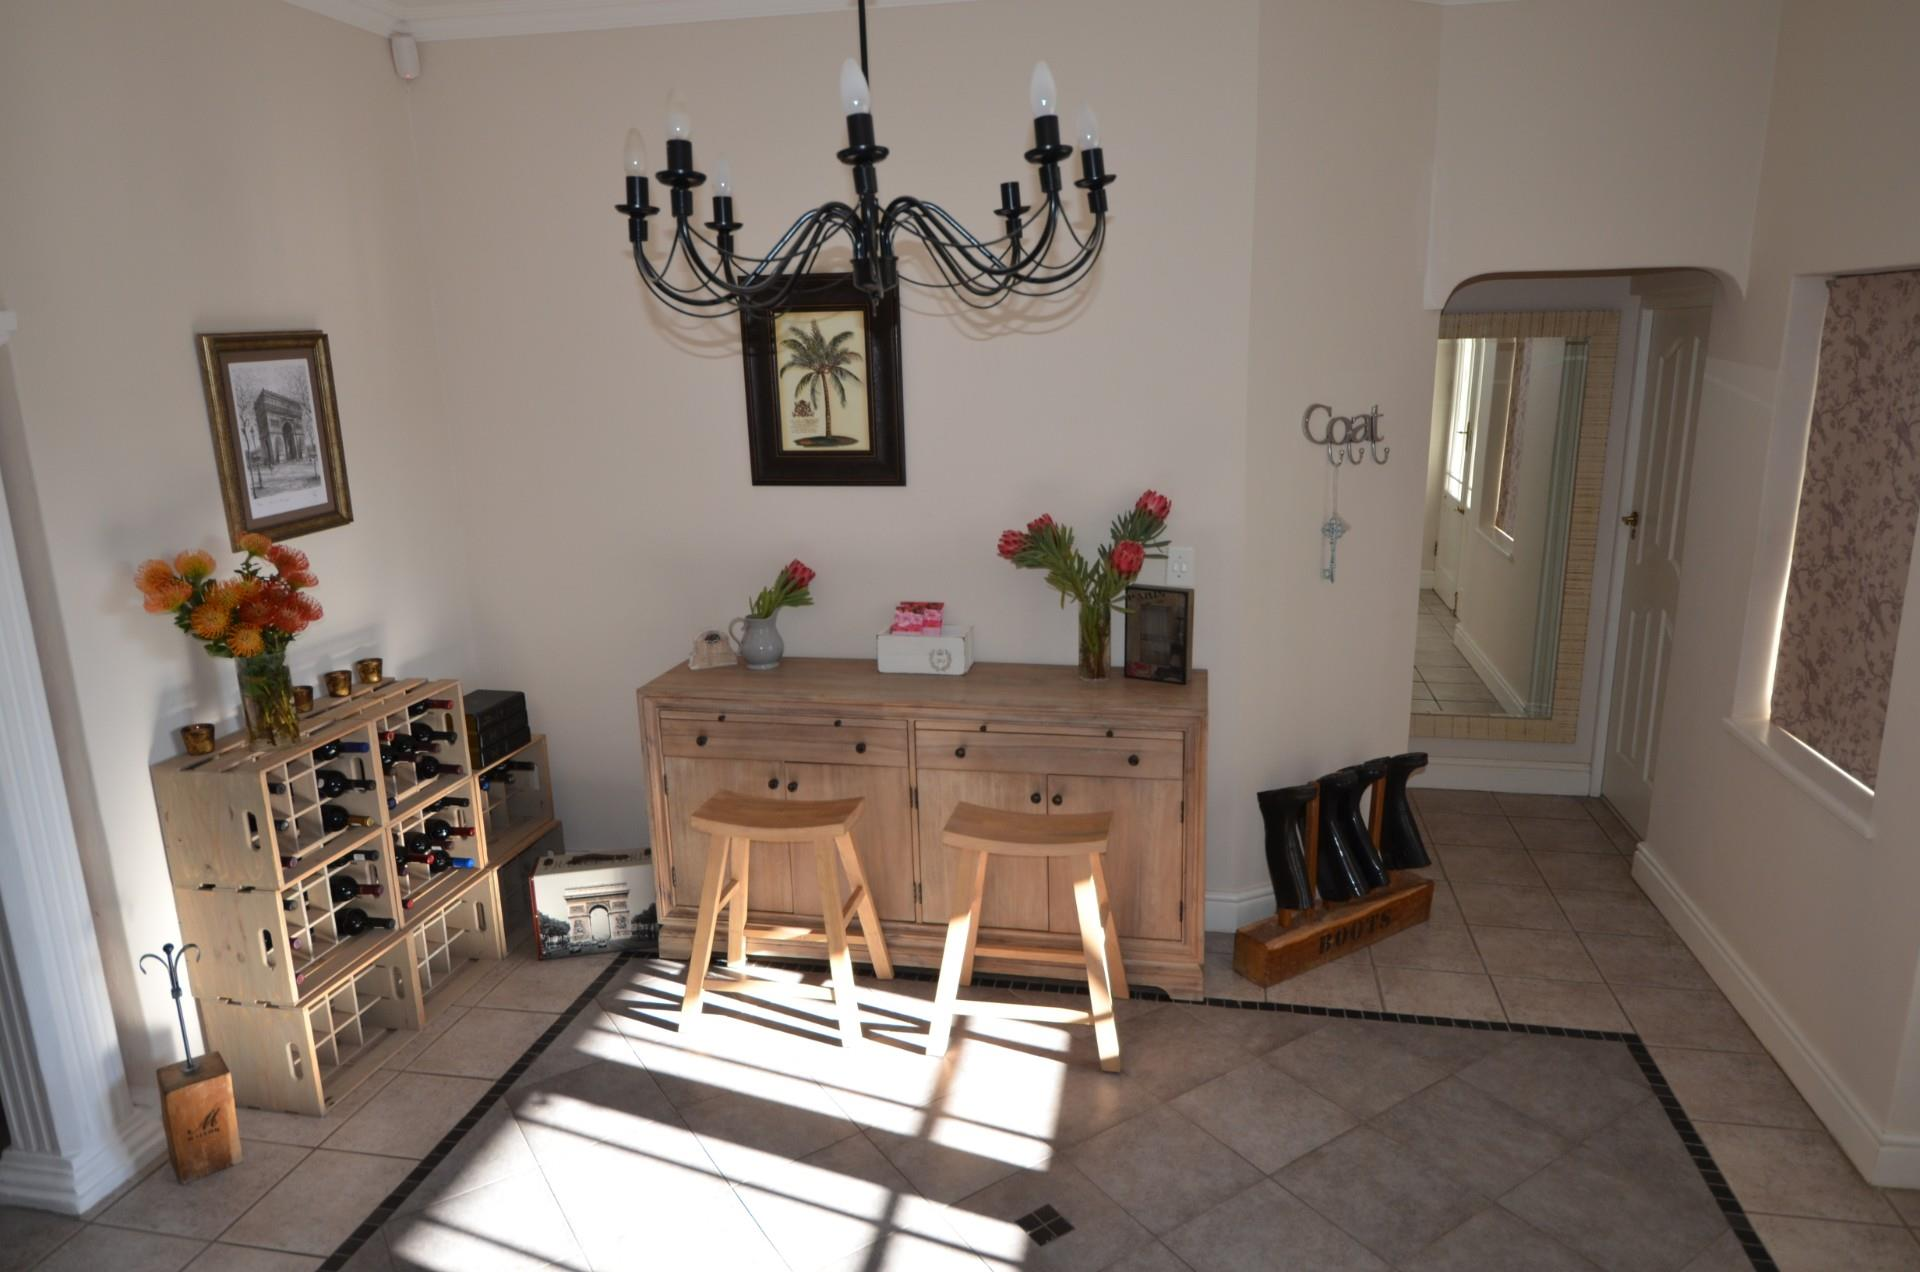 6 Bedroom House For Sale in Franschhoek